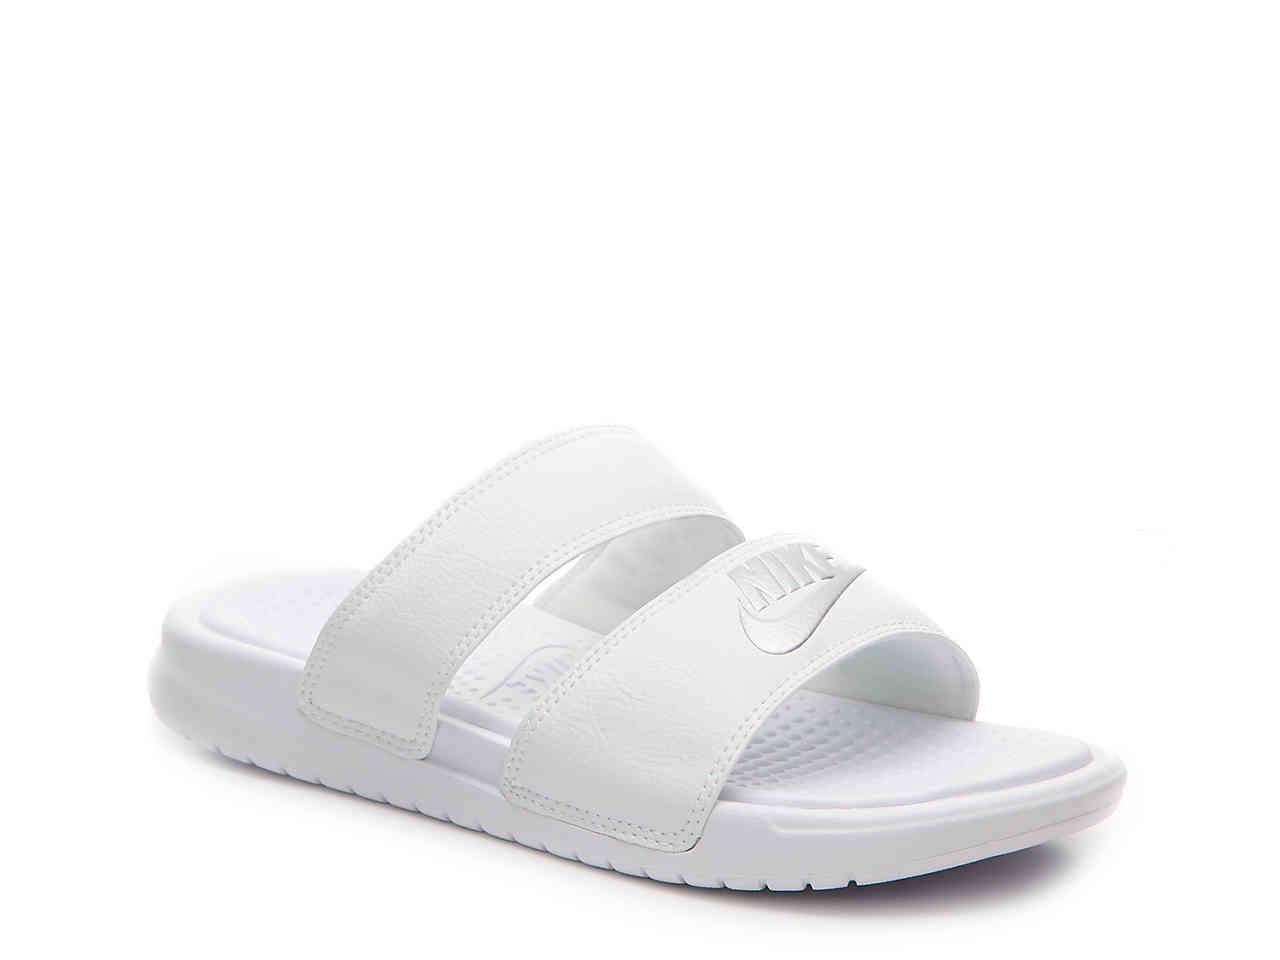 Nike. Women's White Benassi Duo Ultra Slide Sandal